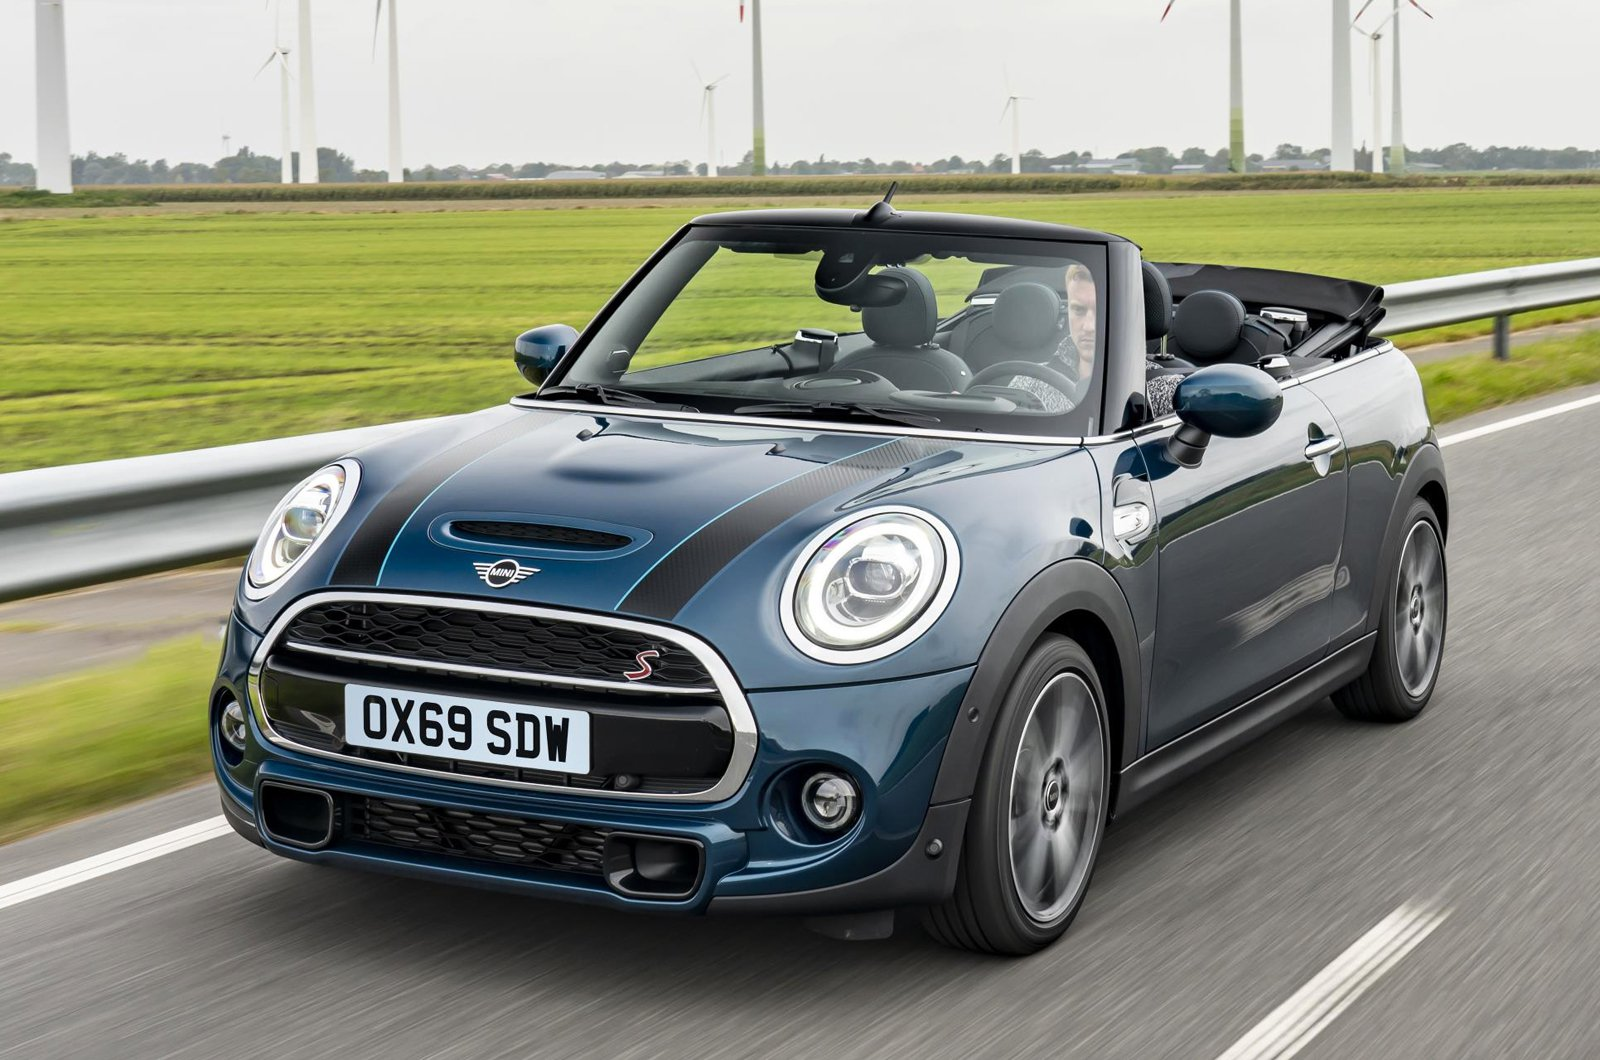 Mini Cooper S Convertible front - 69 plate